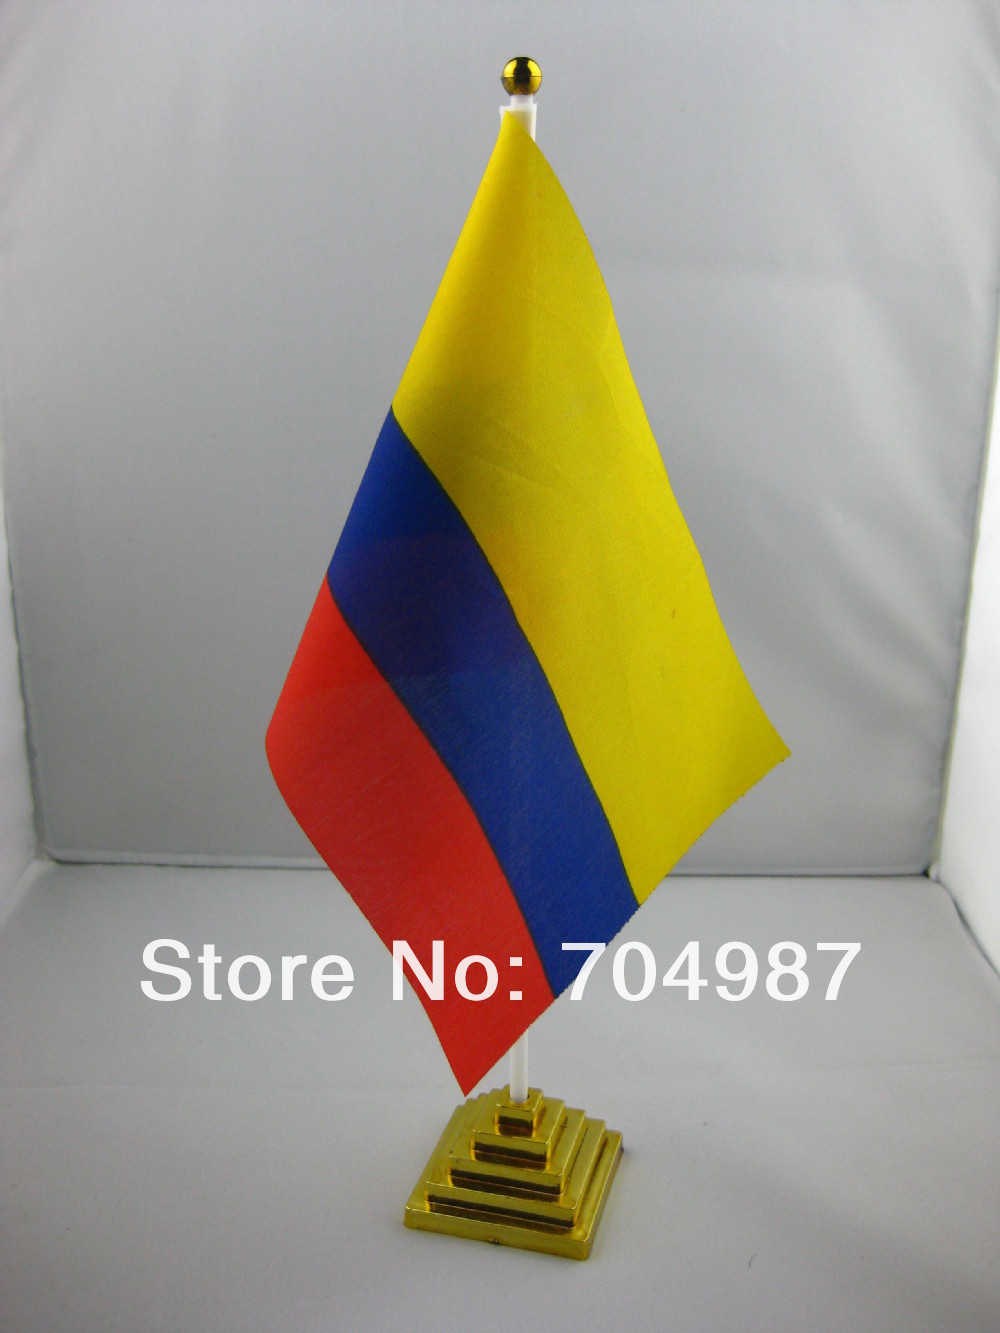 Colombia table flag desk flag table banner desk banner free shipping(China (Mainland))